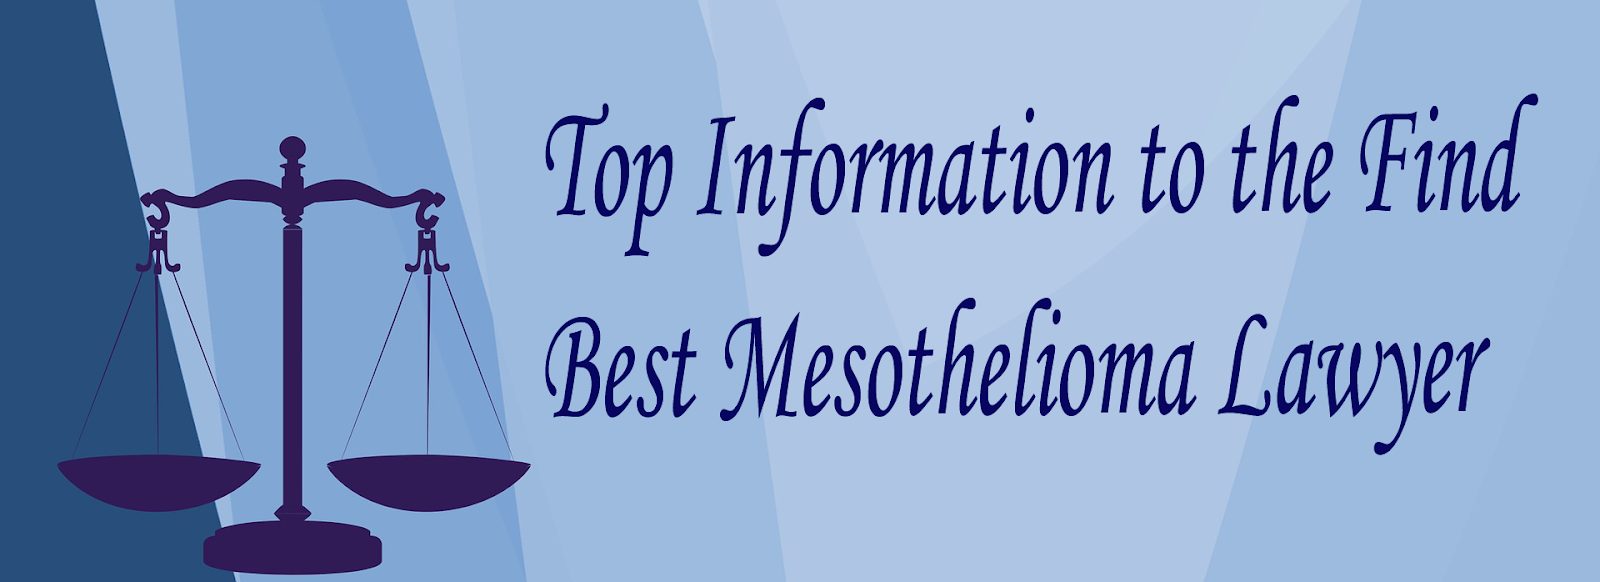 Trying To Find The Best Mesothelioma Lawyer It Is Very Important To Choose The Best Mesothelioma Lawyer As It Is Not Ve Mesothelioma Accident Attorney Lawyer